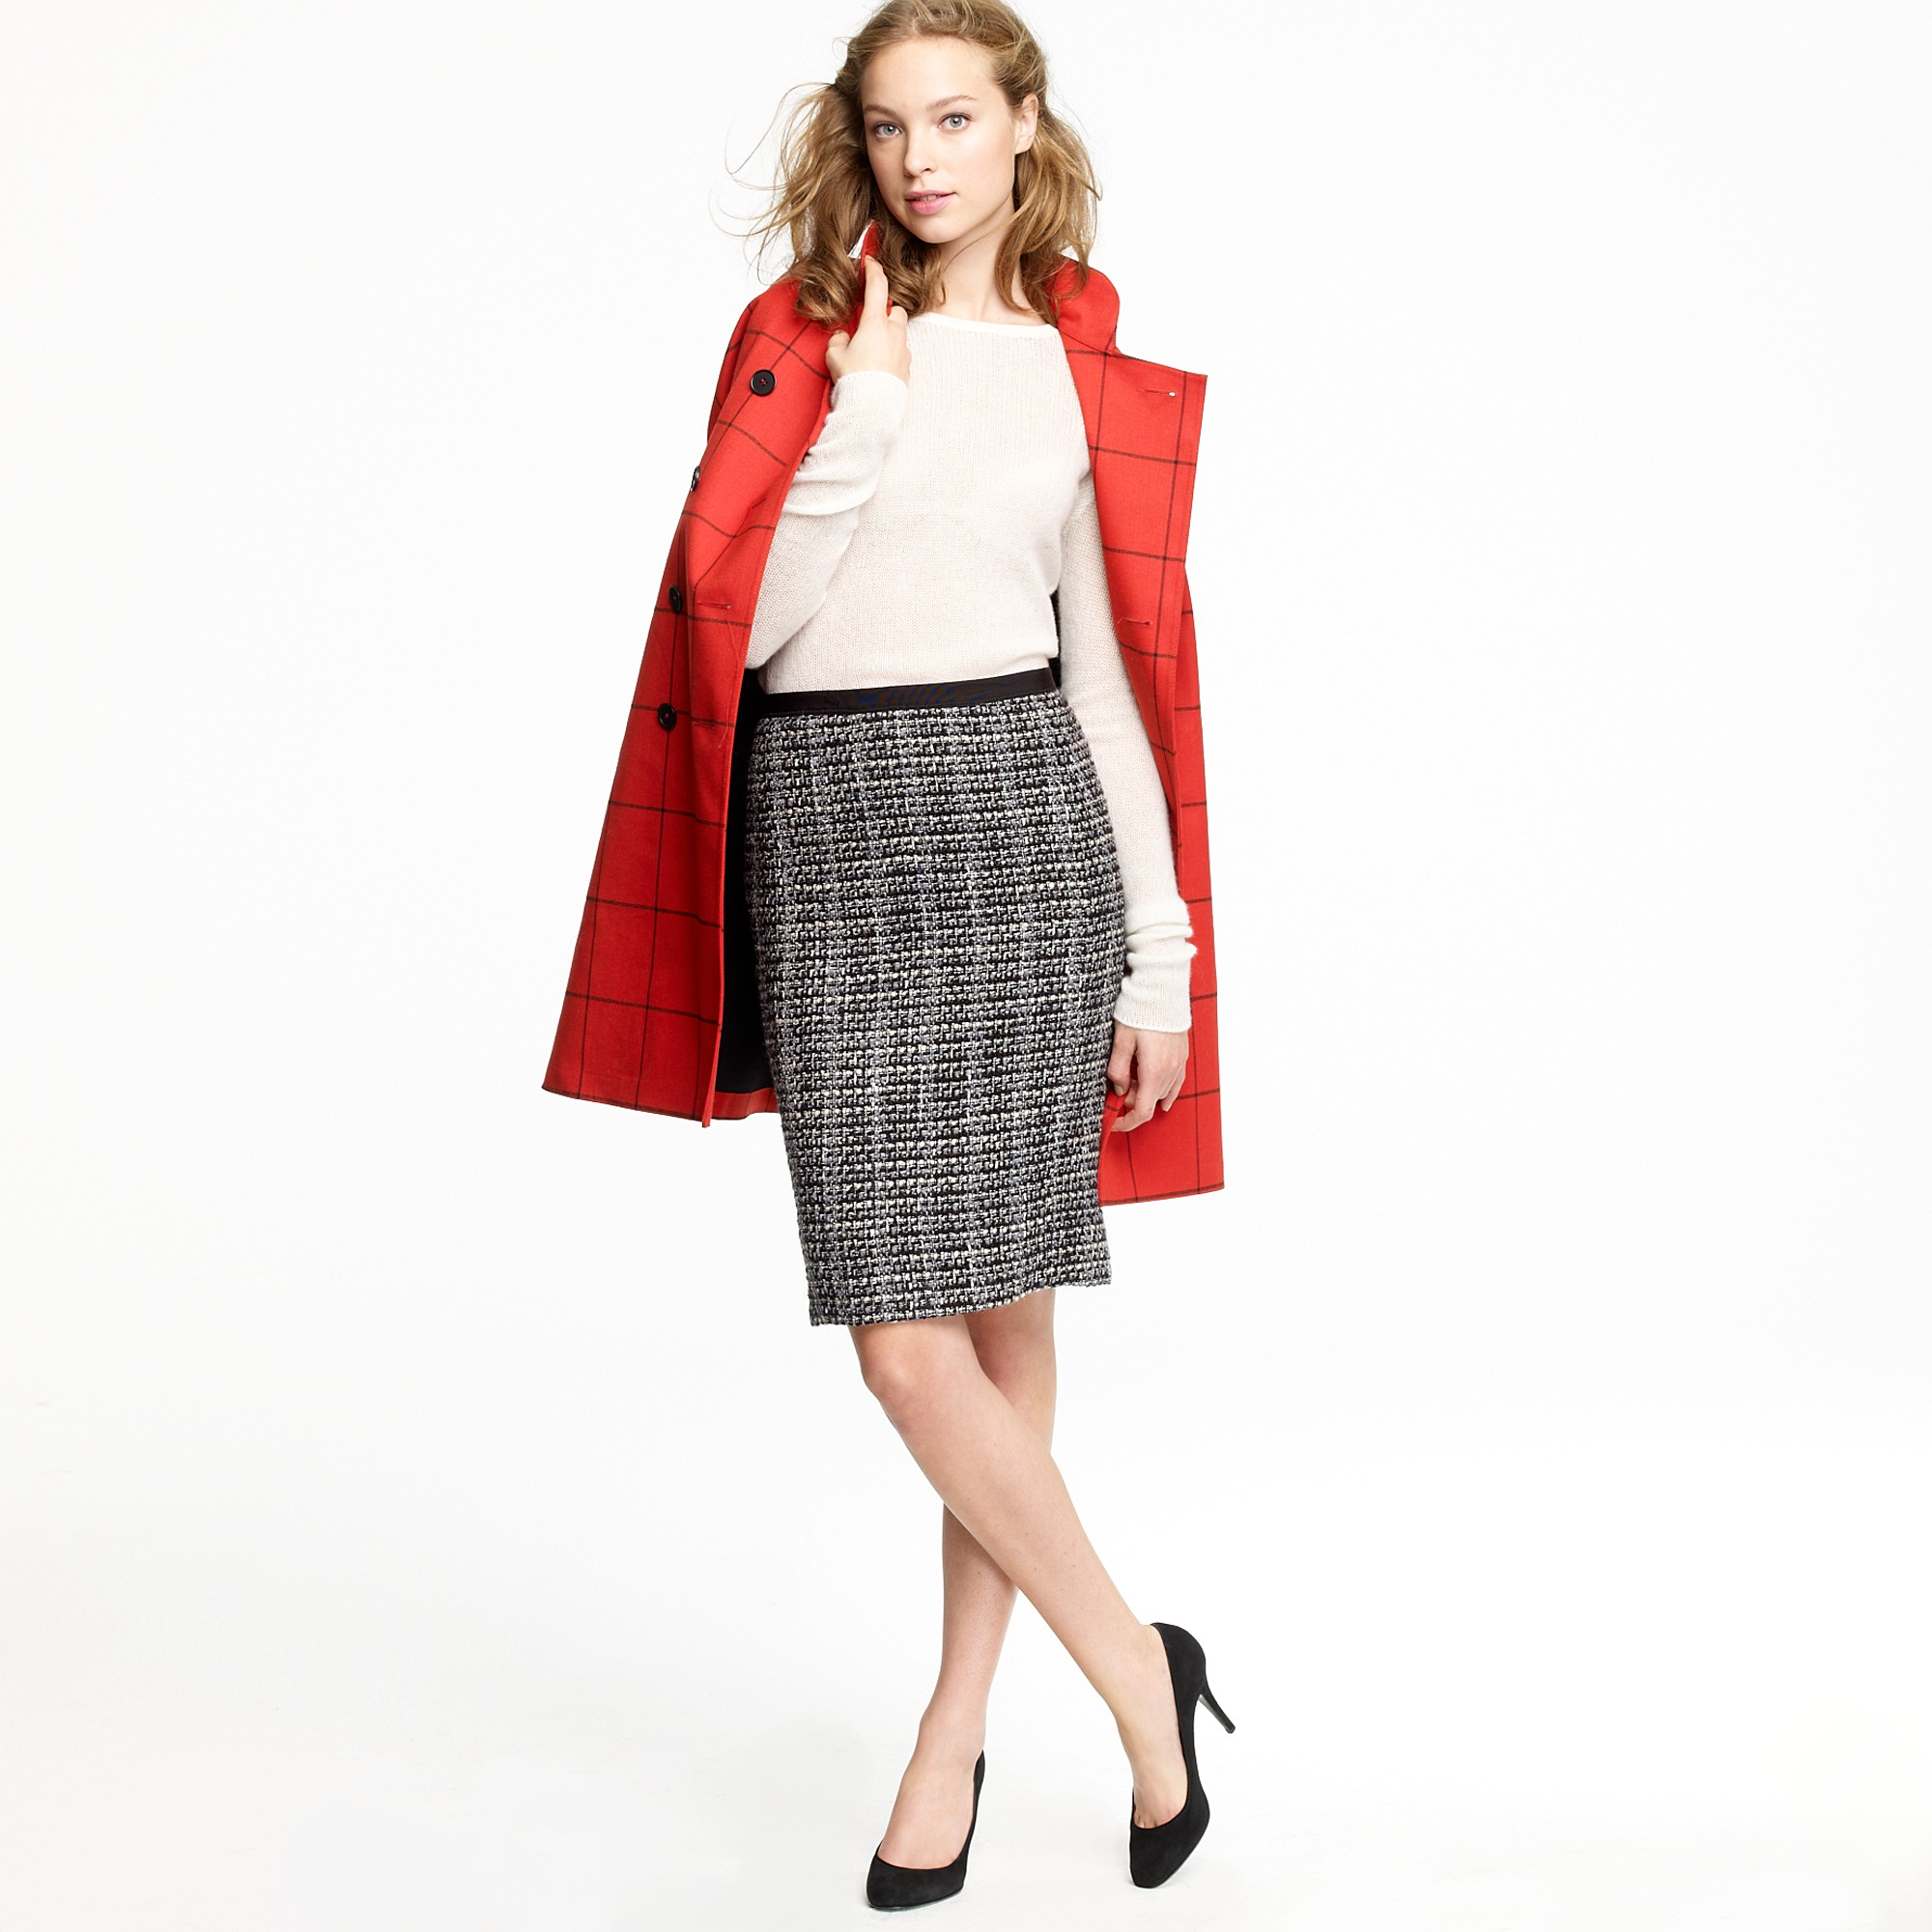 j crew no 2 pencil skirt in midnight tweed in gray lyst